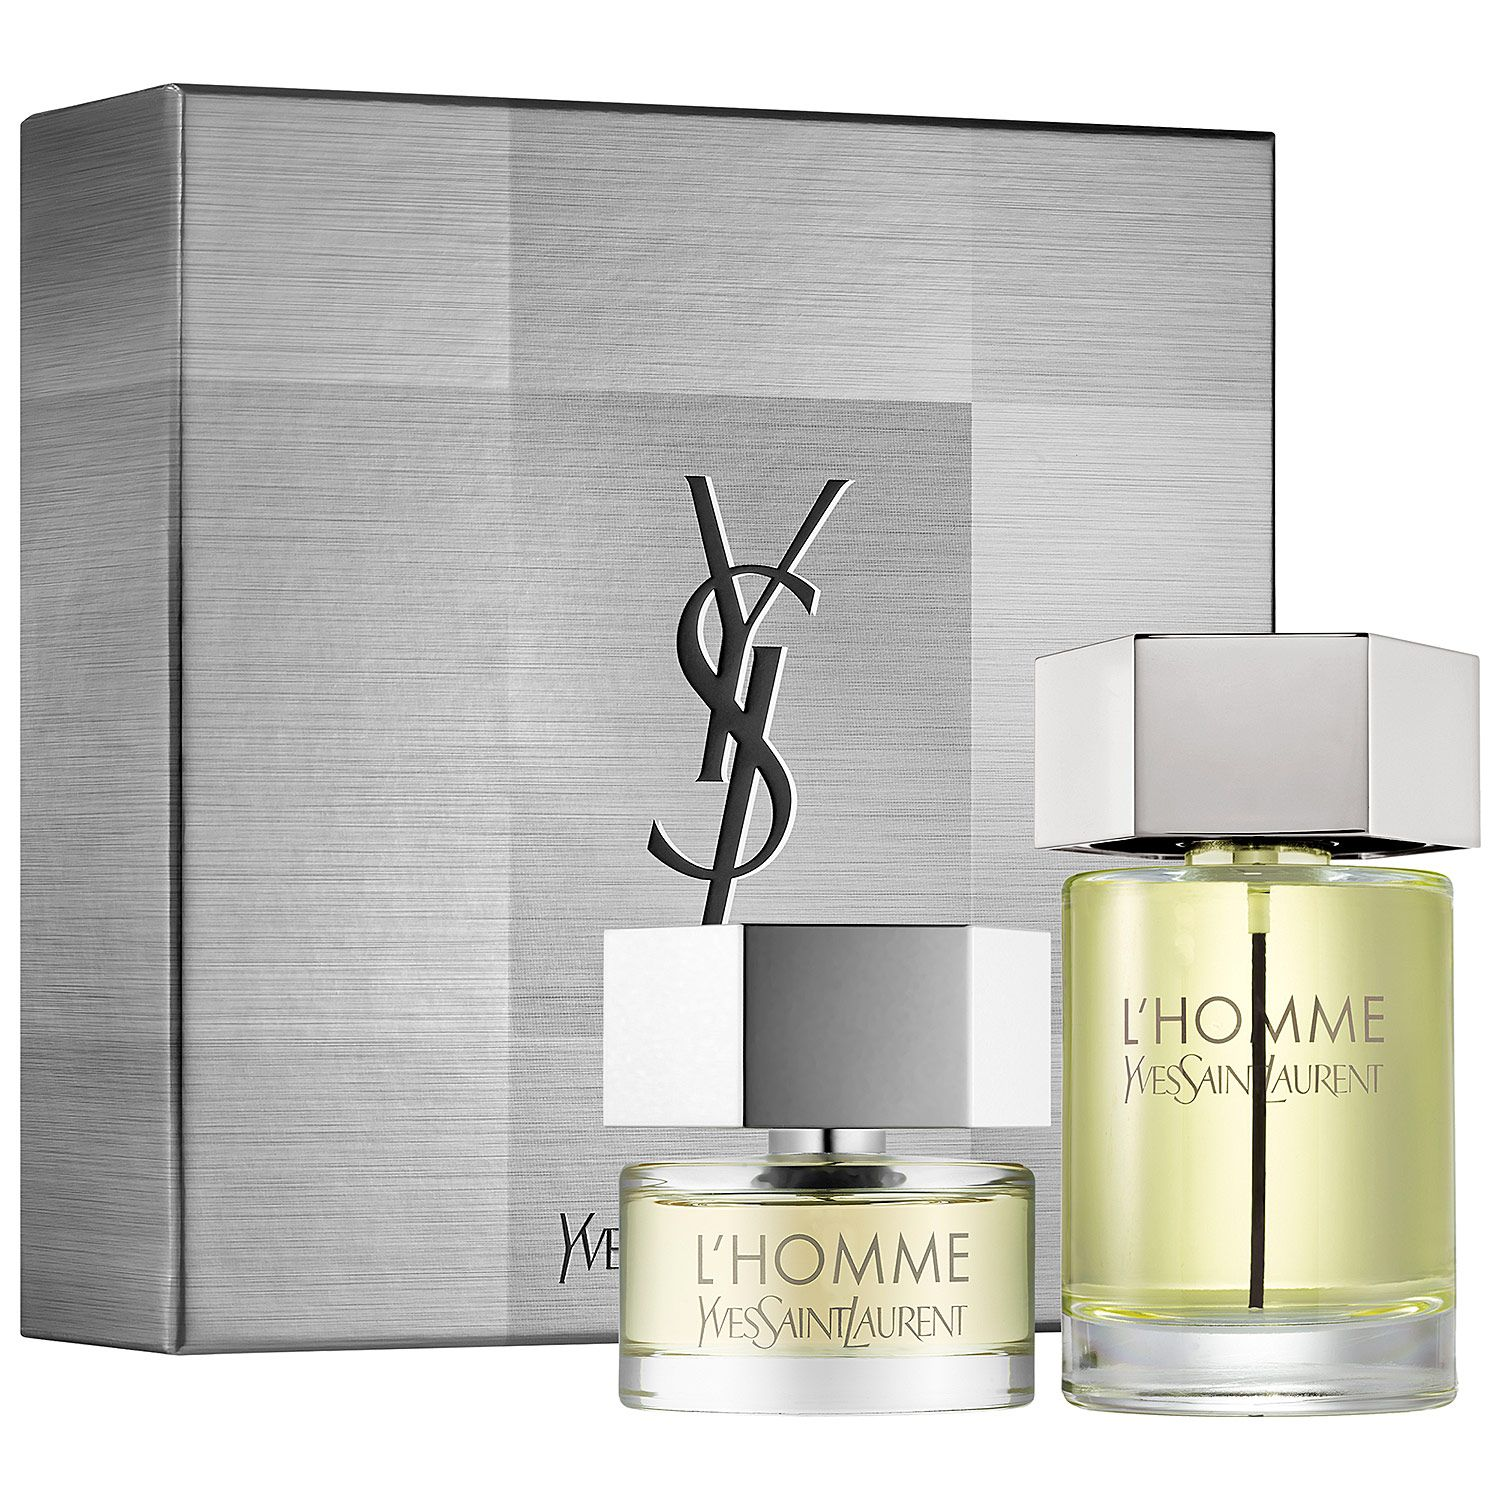 Yves Saint Laurent L homme Gift Set  Sephora  gifts  giftsforhim ... 4b4aee80410